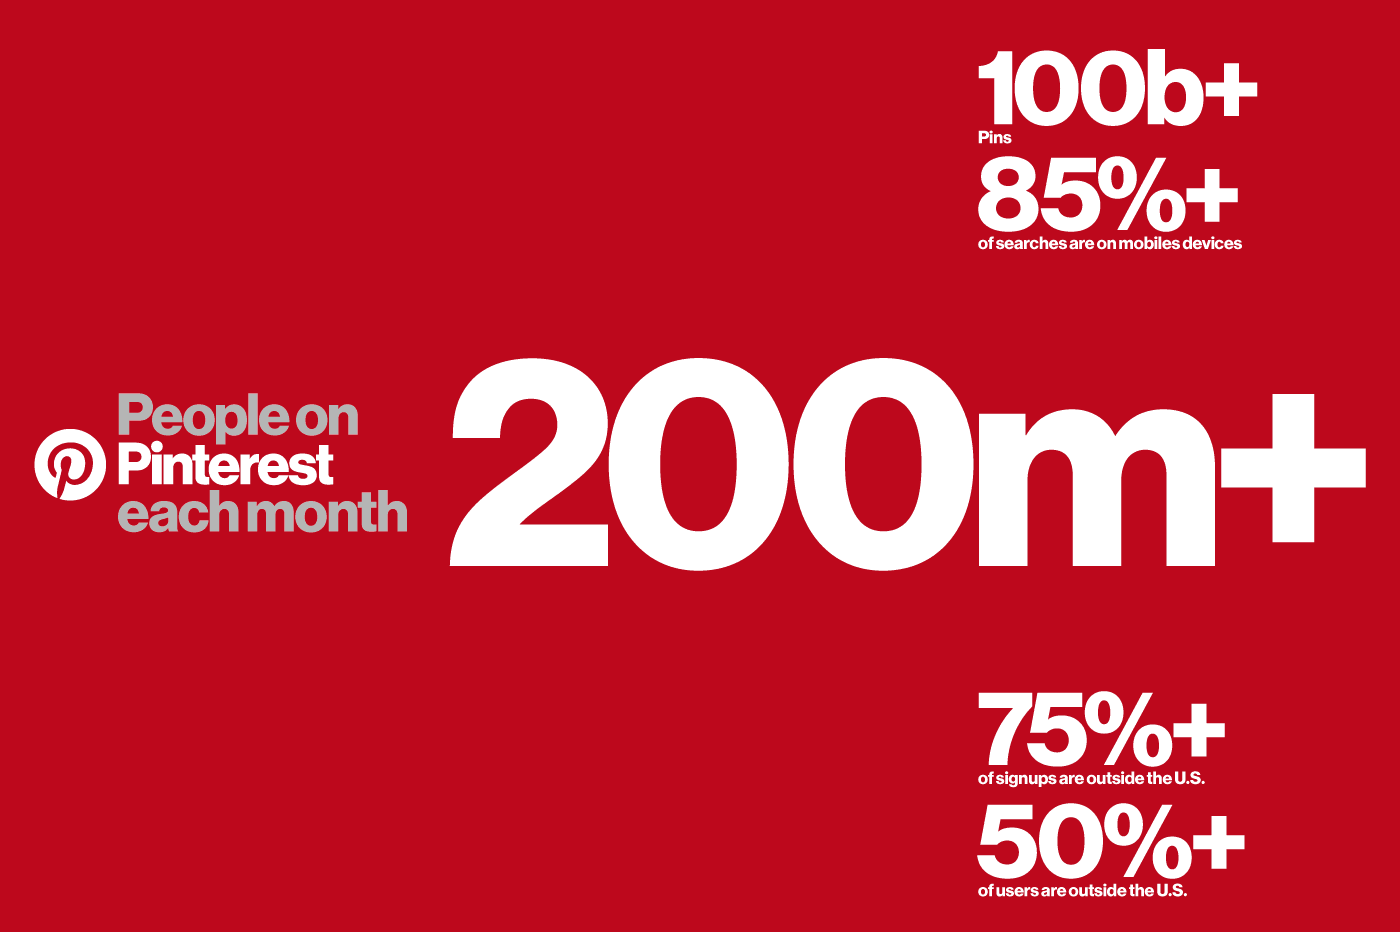 Pinterest Hits 200M Users, + New Features on the Way